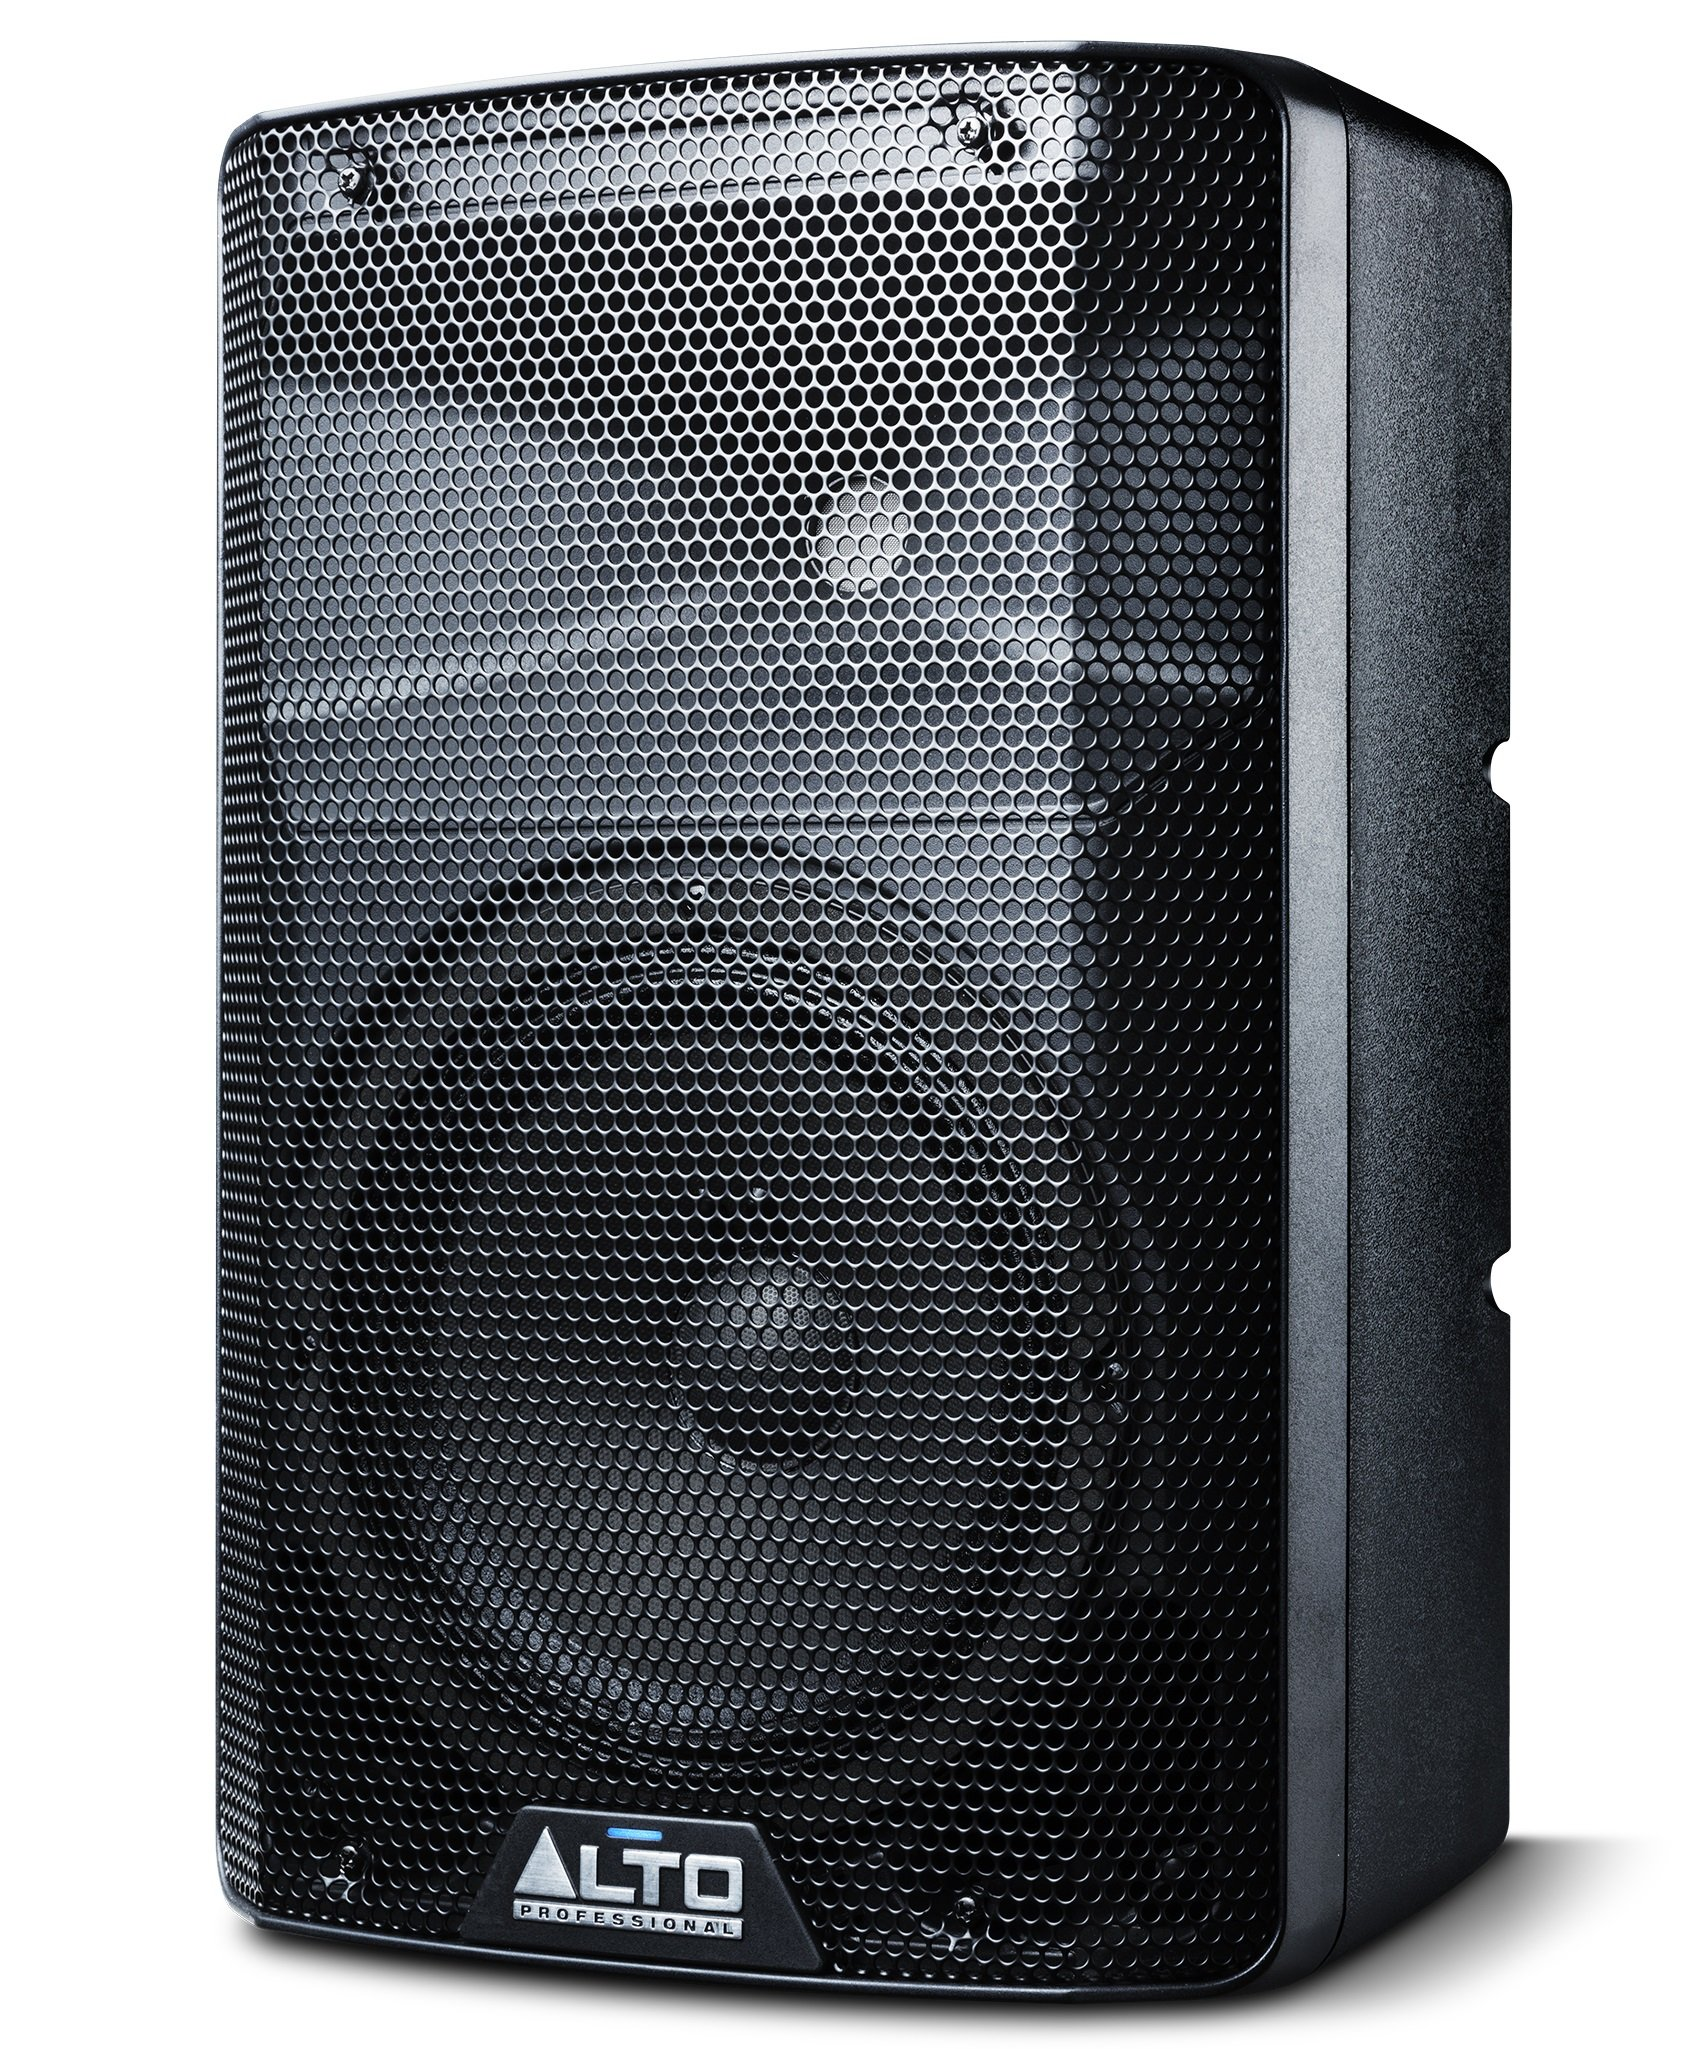 Alto Professional TX208 | 300-Watt 8-Inch 2-Way Powered Loudspeakers with Active Crossover, Performance-Driven Connectivity and Integrated Analogue Limiter by Alto Professional